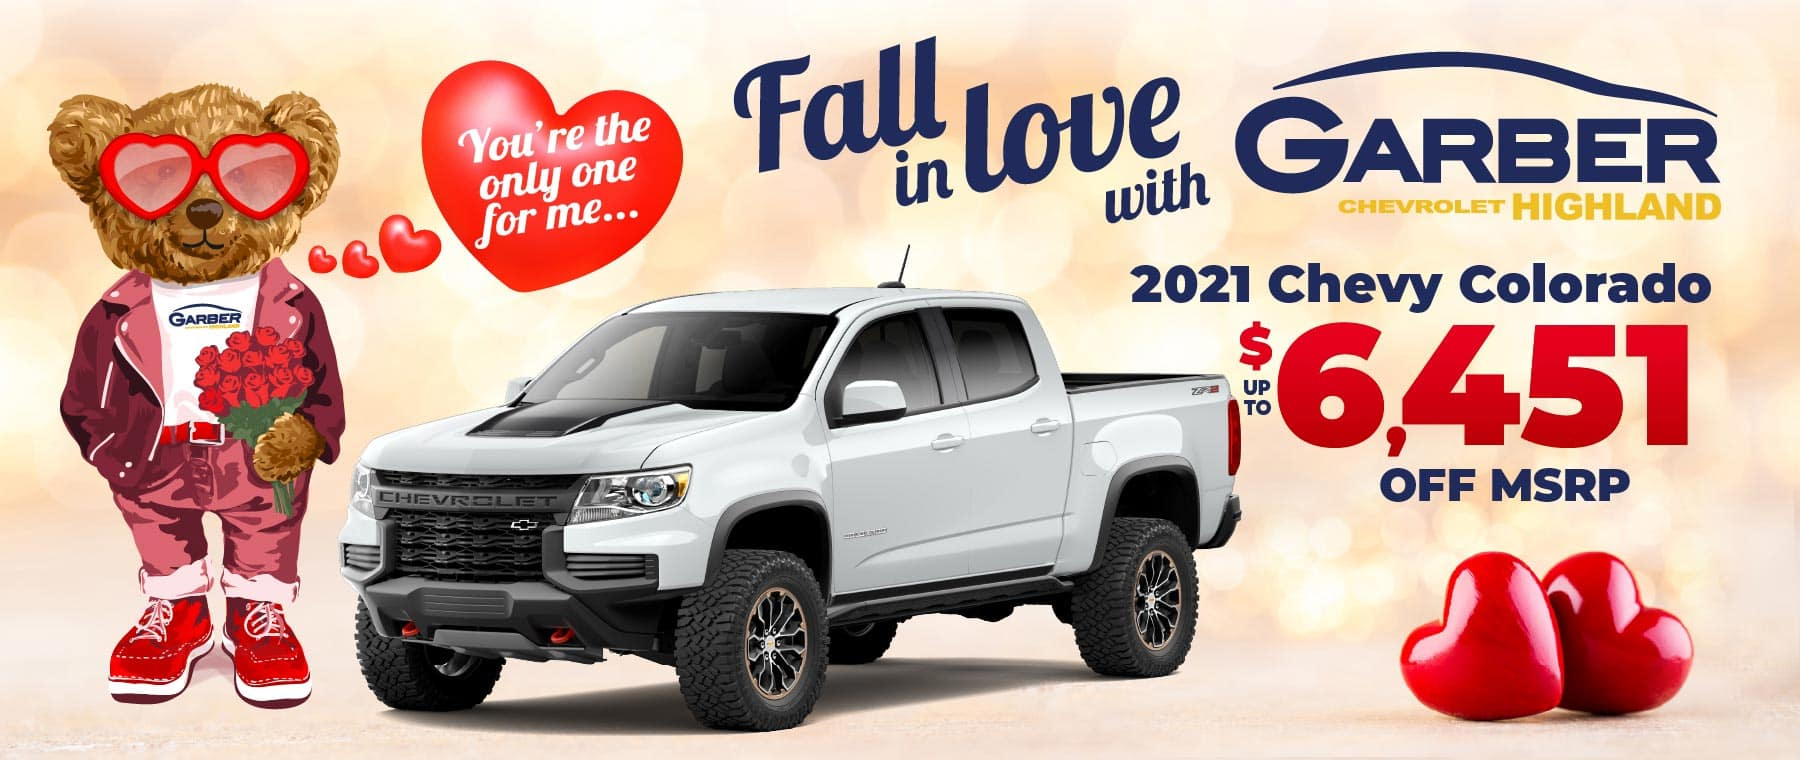 2021 Chevy Colorado - up to $6451 off MSRP